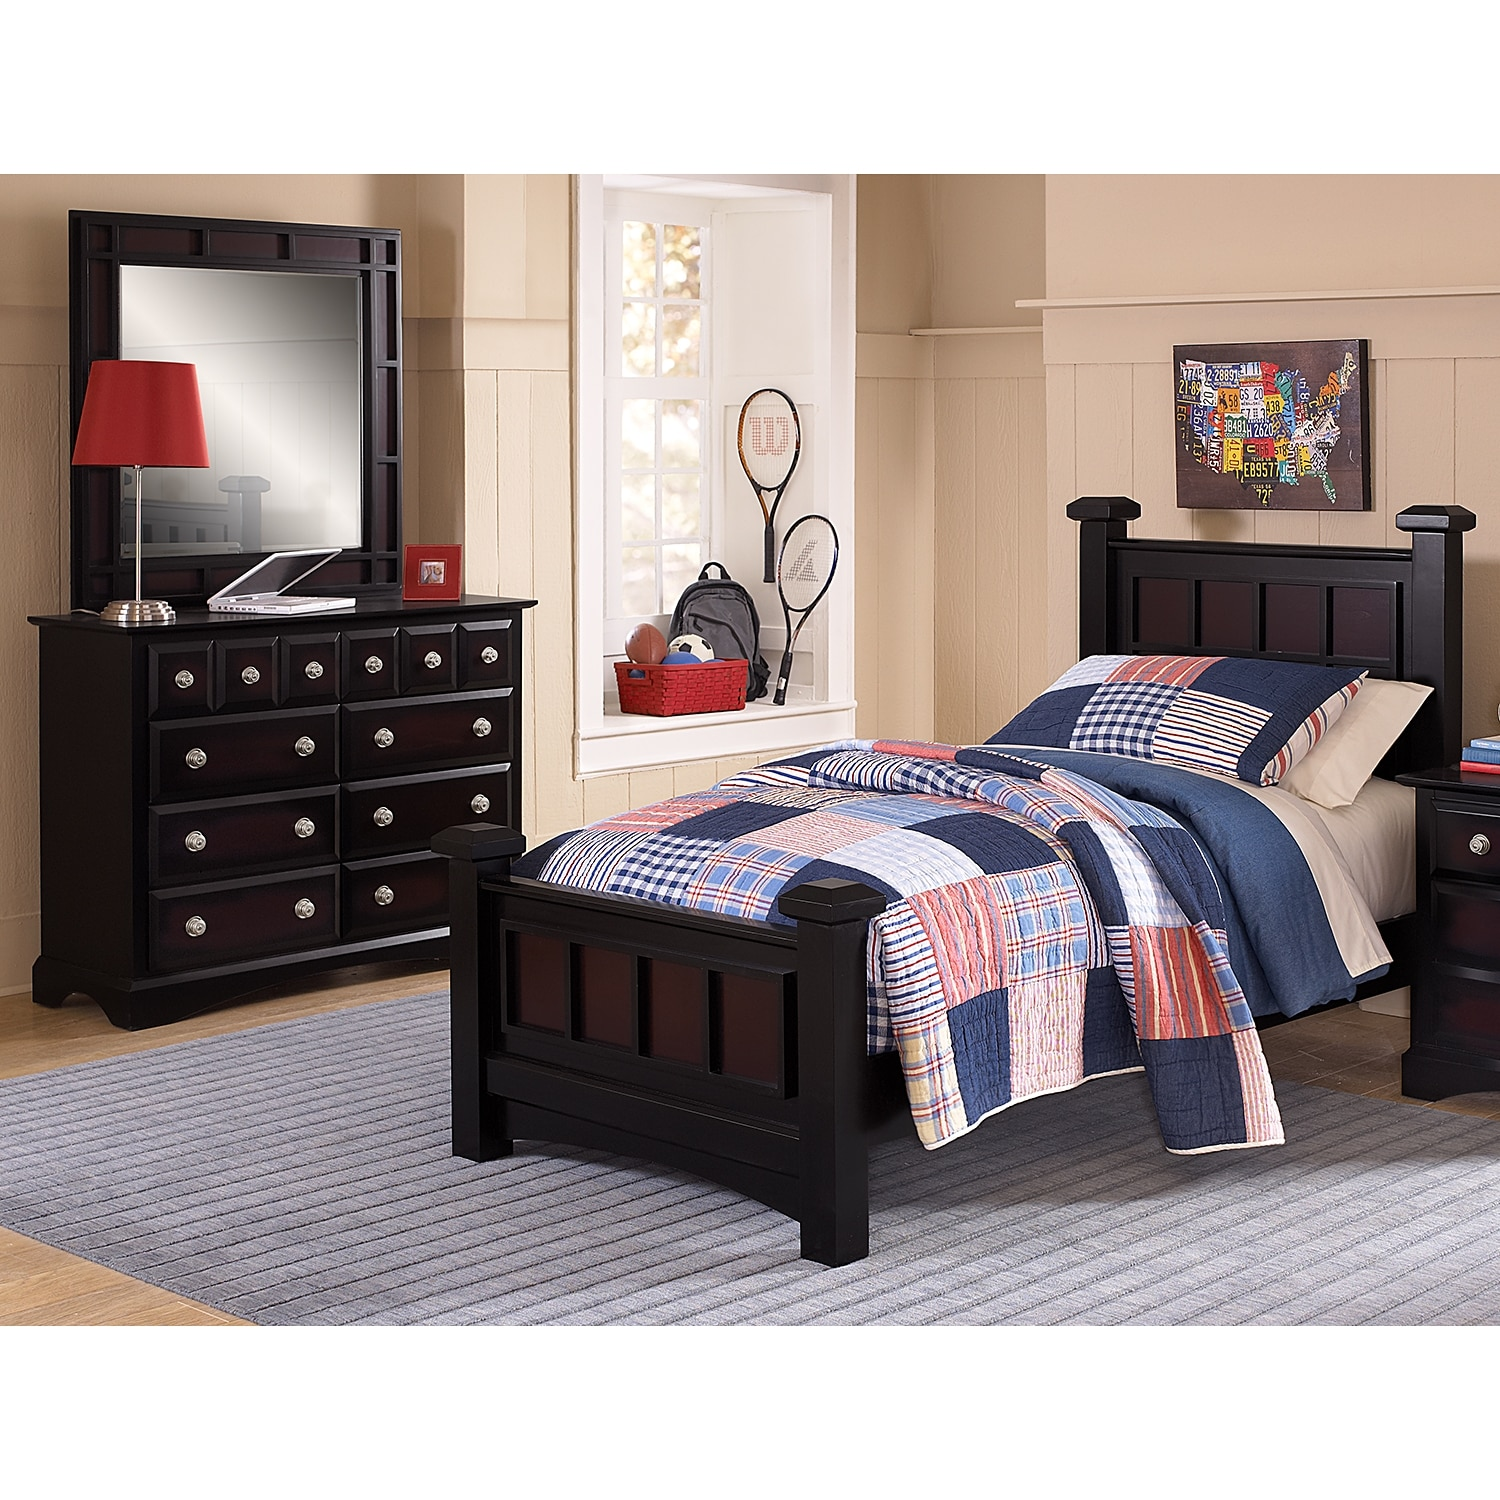 kids furniture winchester 5 piece twin bedroom set black and